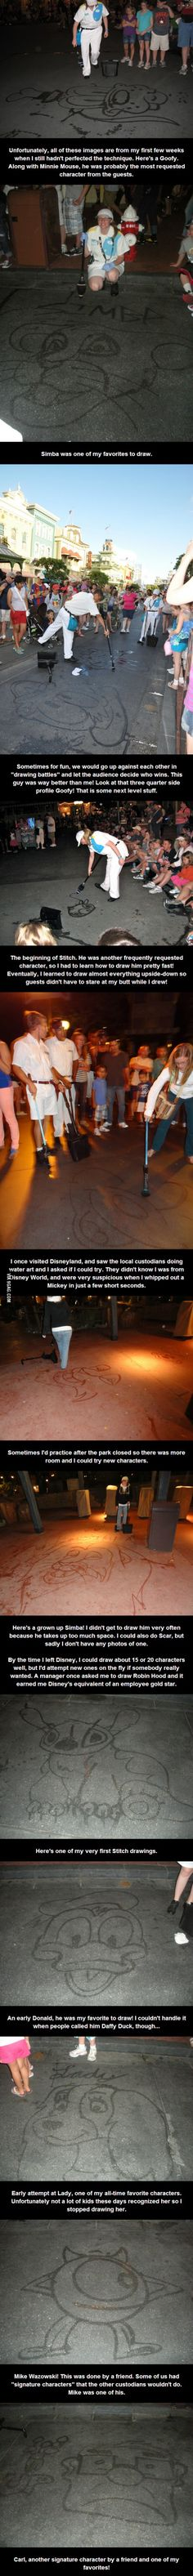 I got to do this when I worked at Disney world. Definitely the coolest thing about custodial